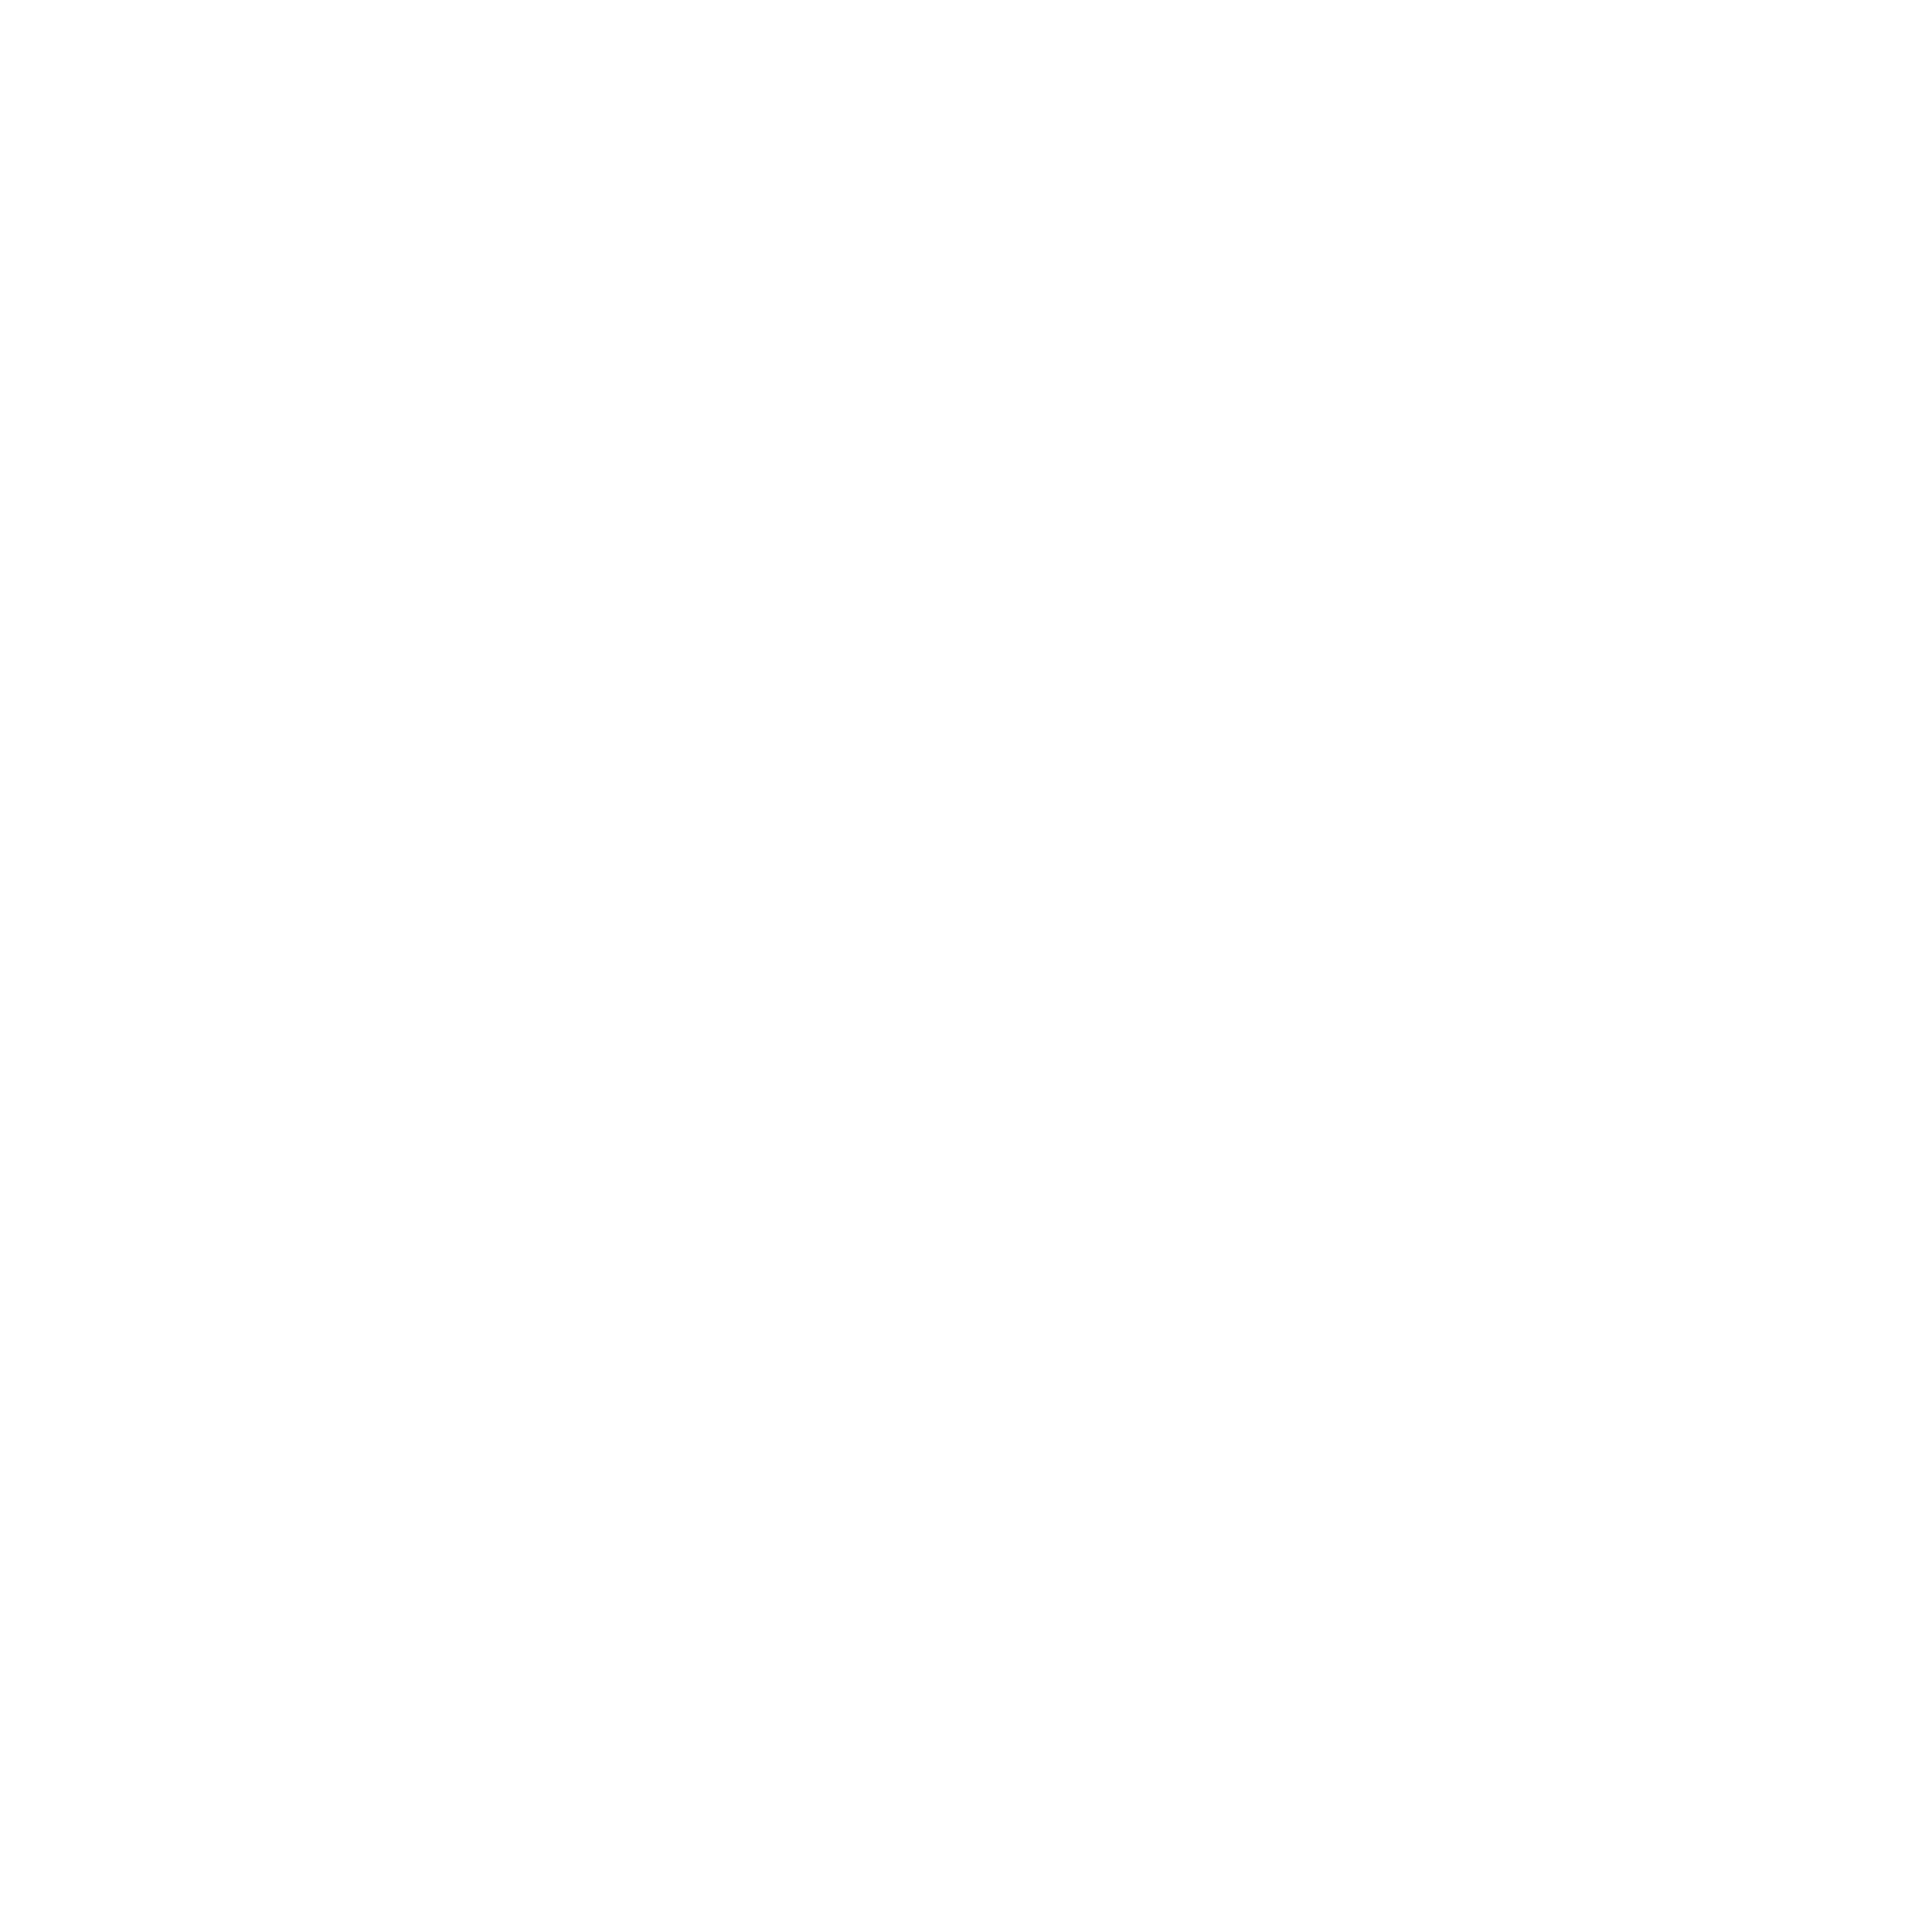 Canada's #1 Hit Music Brand Virgin Radio Launches THE KARDI PARTY Featuring Kardinal Offishall, This Weekend